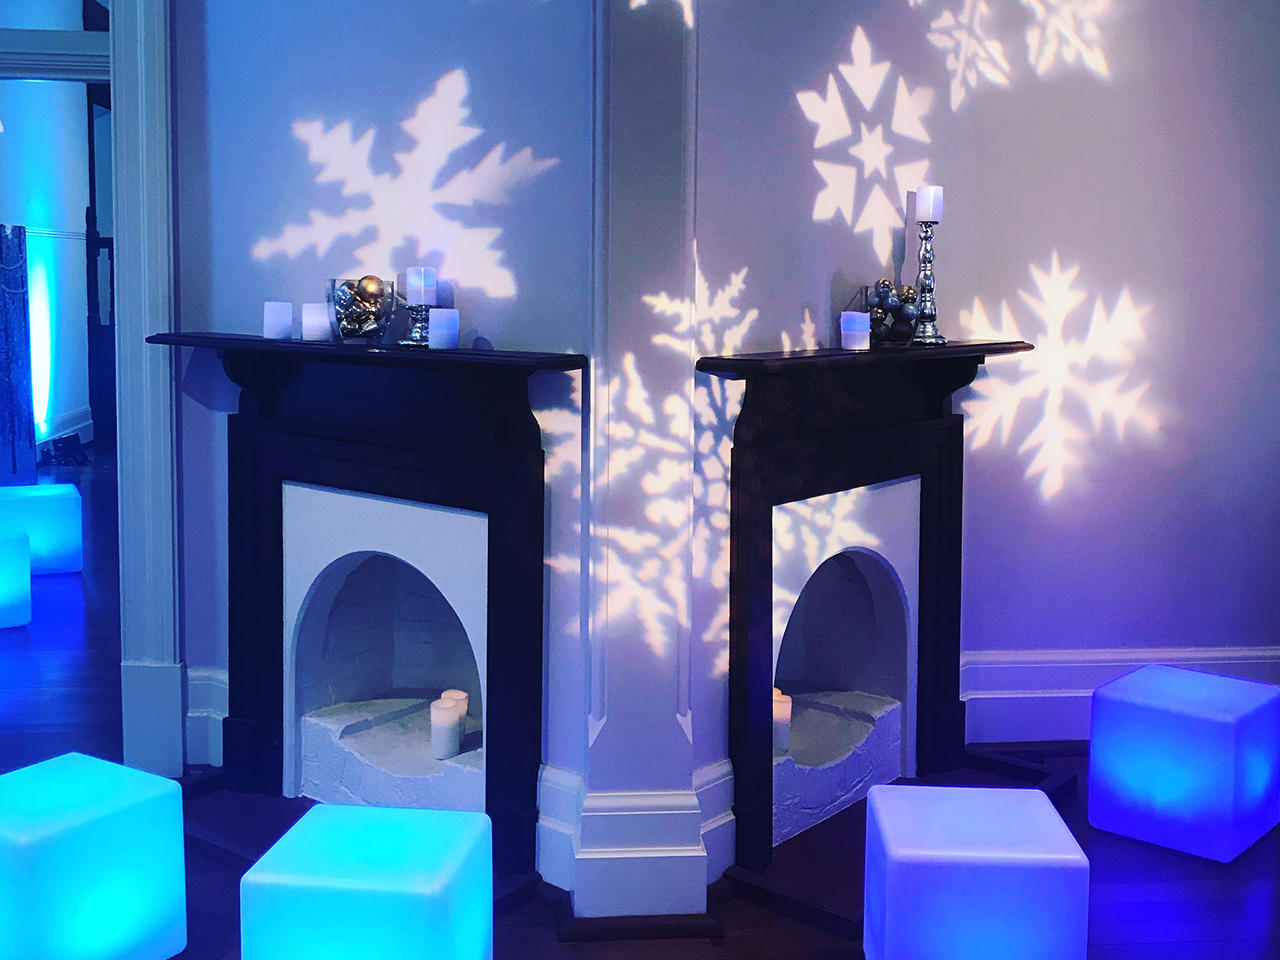 Inside The Gallery With Cocktail Tables, Chairs And Snowflakes Lightning